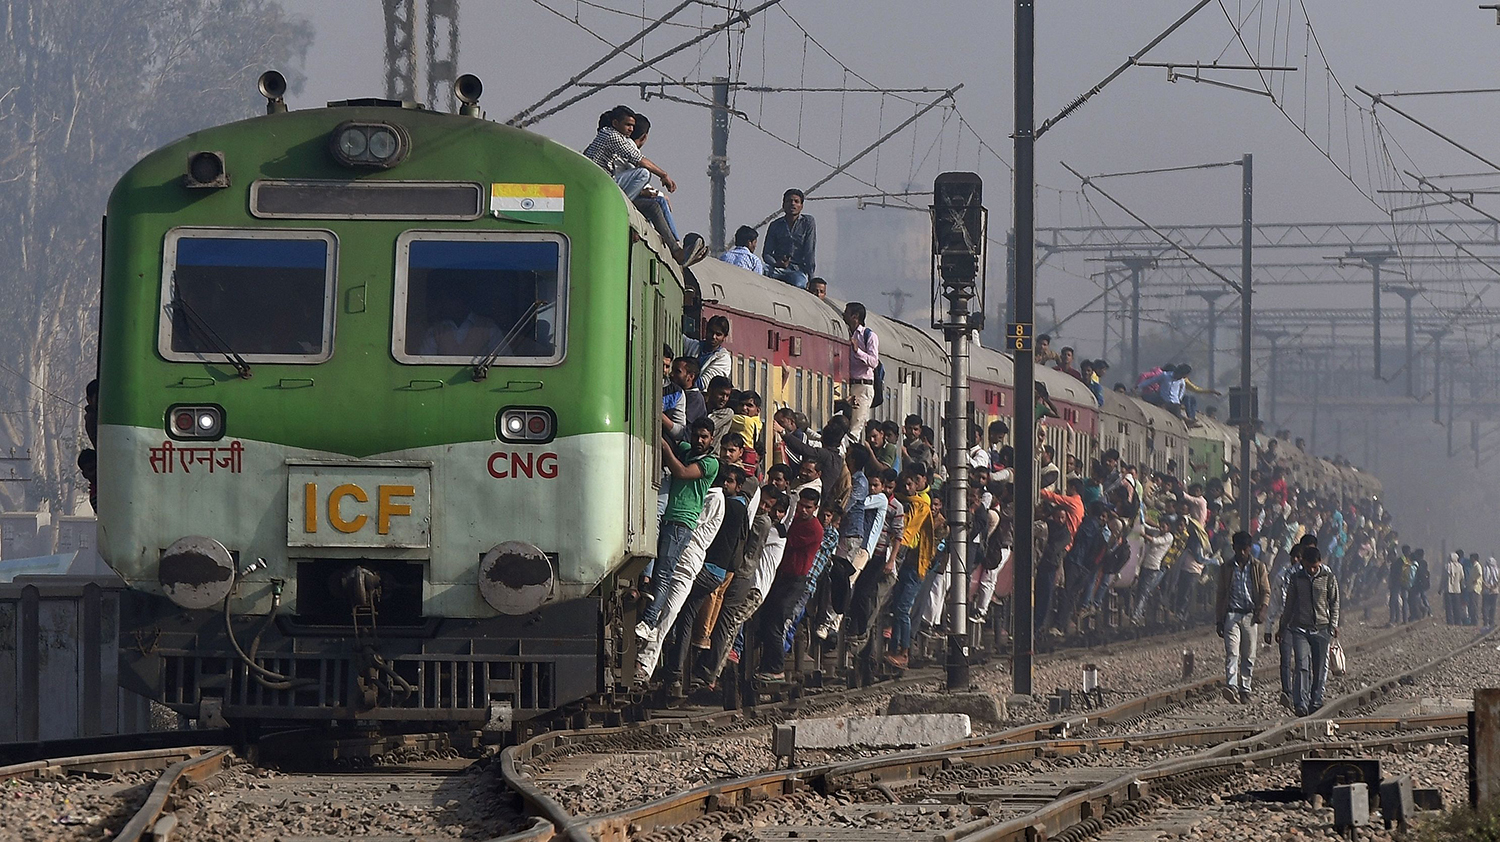 TOPSHOT - Indian passengers hang onto a train as it departs from a station on the outskirts of New Delhi on February 28, 2017. India's economic growth rate fell to seven percent in the third quarter of the financial year after the controversial ban on high-value banks notes in November, the government said. Gross domestic product in one of the world's fastest growing economies expanded 7.0 percent year-on-year in the three months to the end of December, down from 7.3 percent in the previous quarter, official figures showed. / AFP PHOTO / Prakash SINGH / TT / kod 444